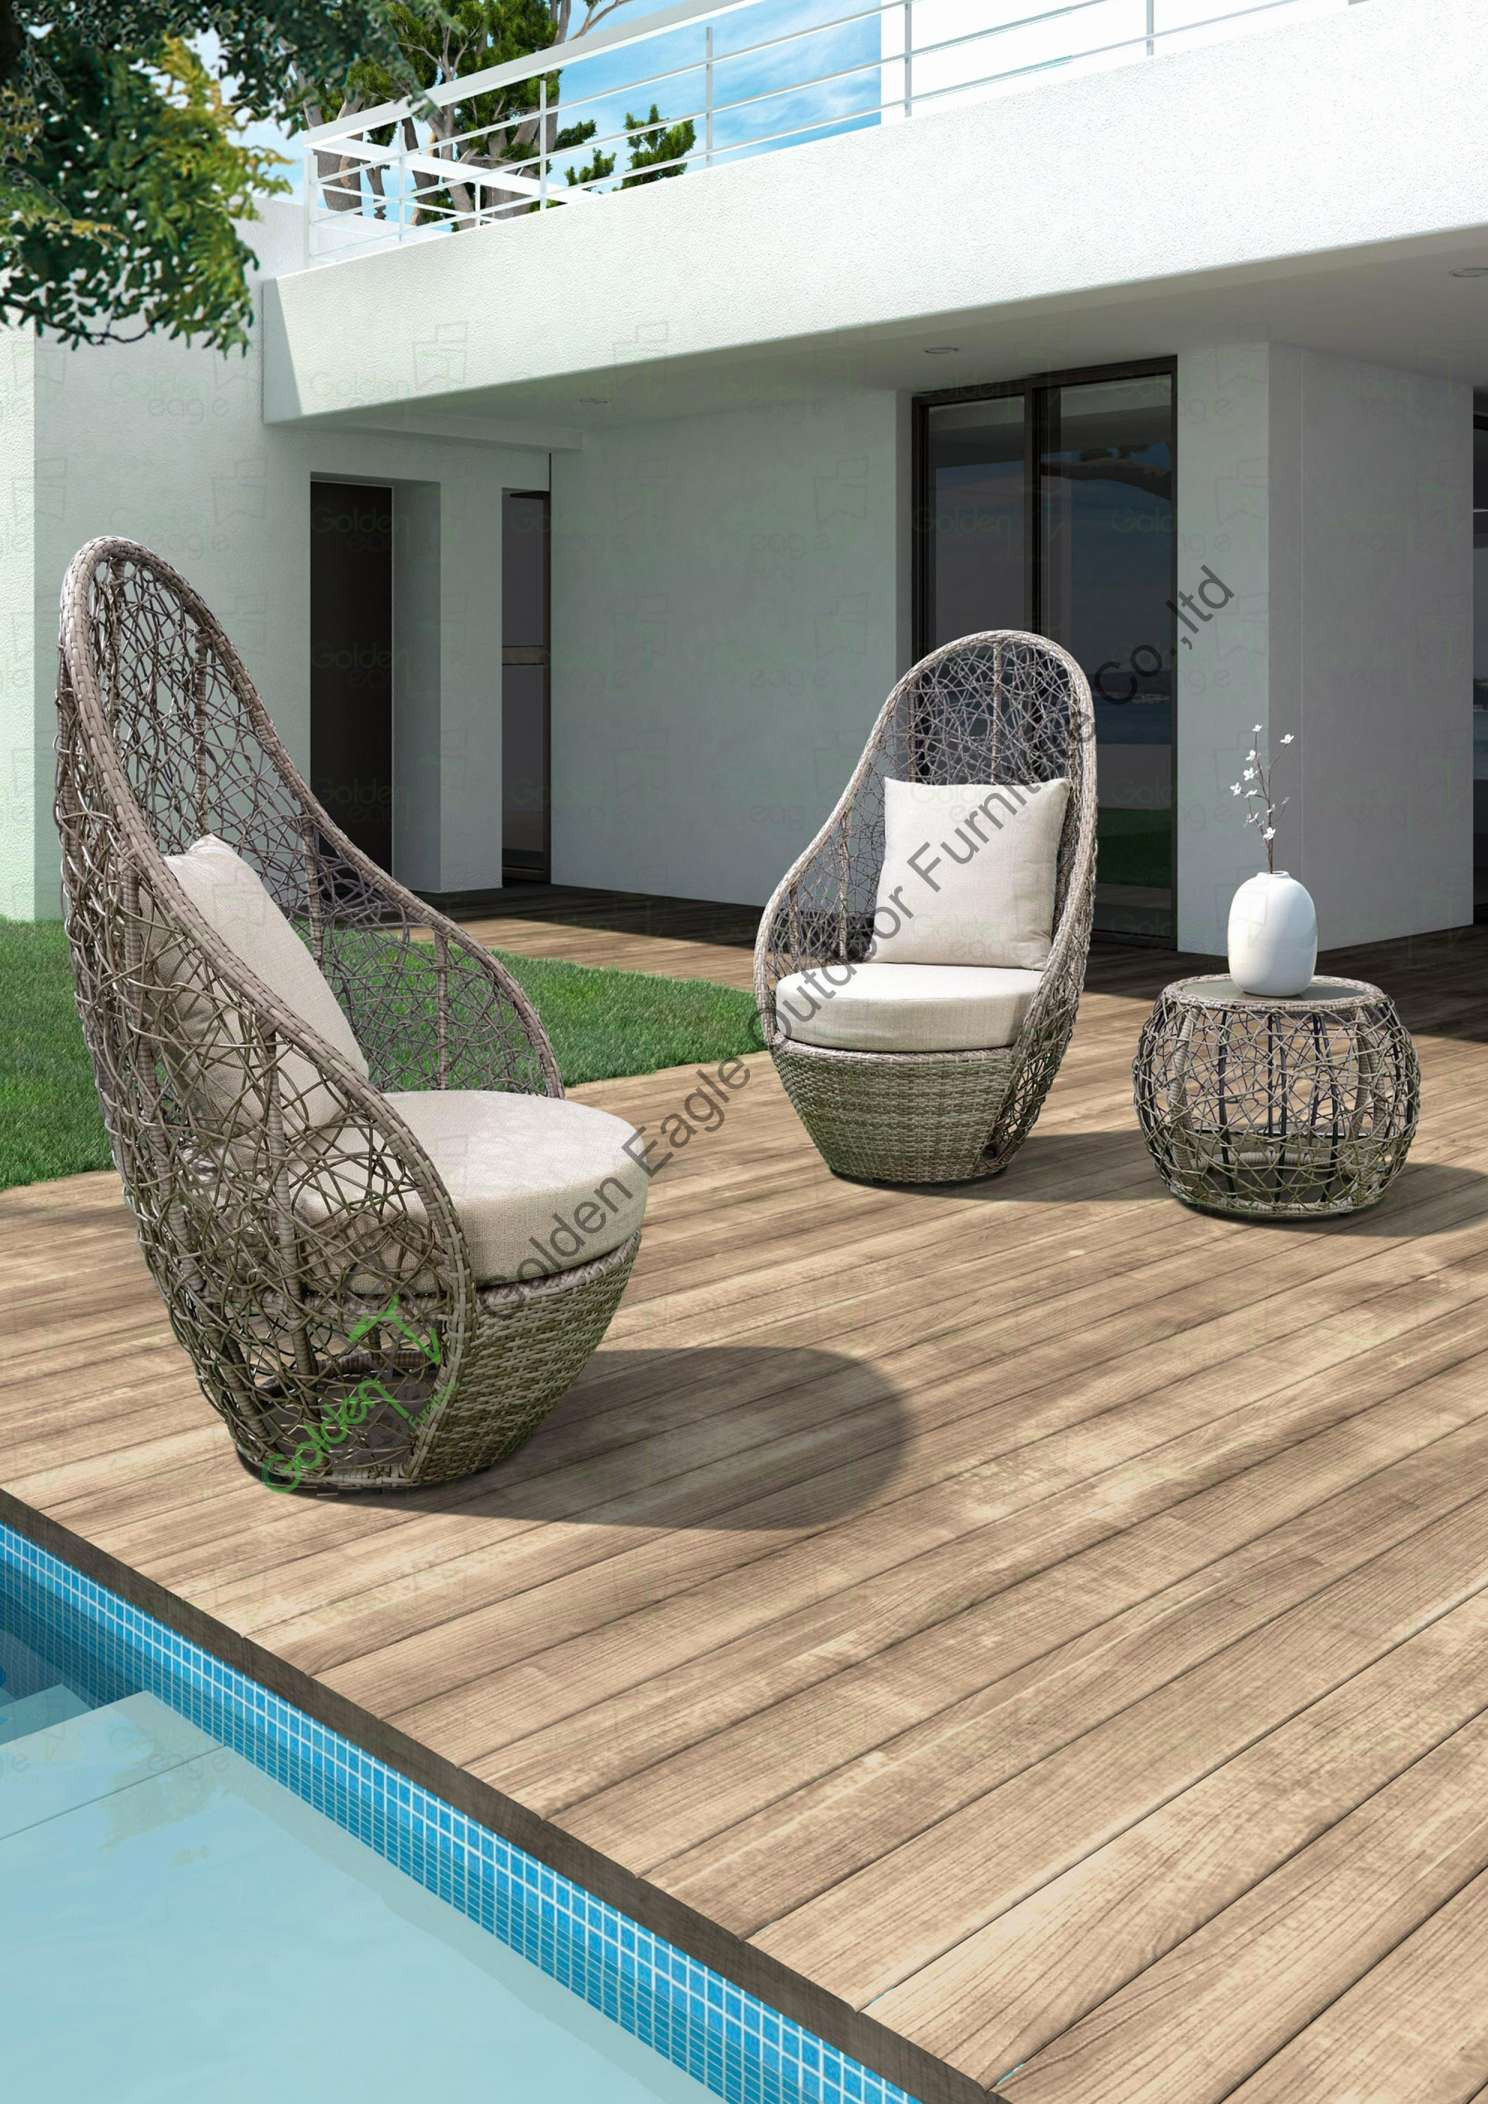 best type of wood for hardwood floors of wood deck canopy best outdoor wood fireplace best yx fireplace 0d in wood deck canopy best outdoor wood fireplace best yx fireplace 0d ideas of deck